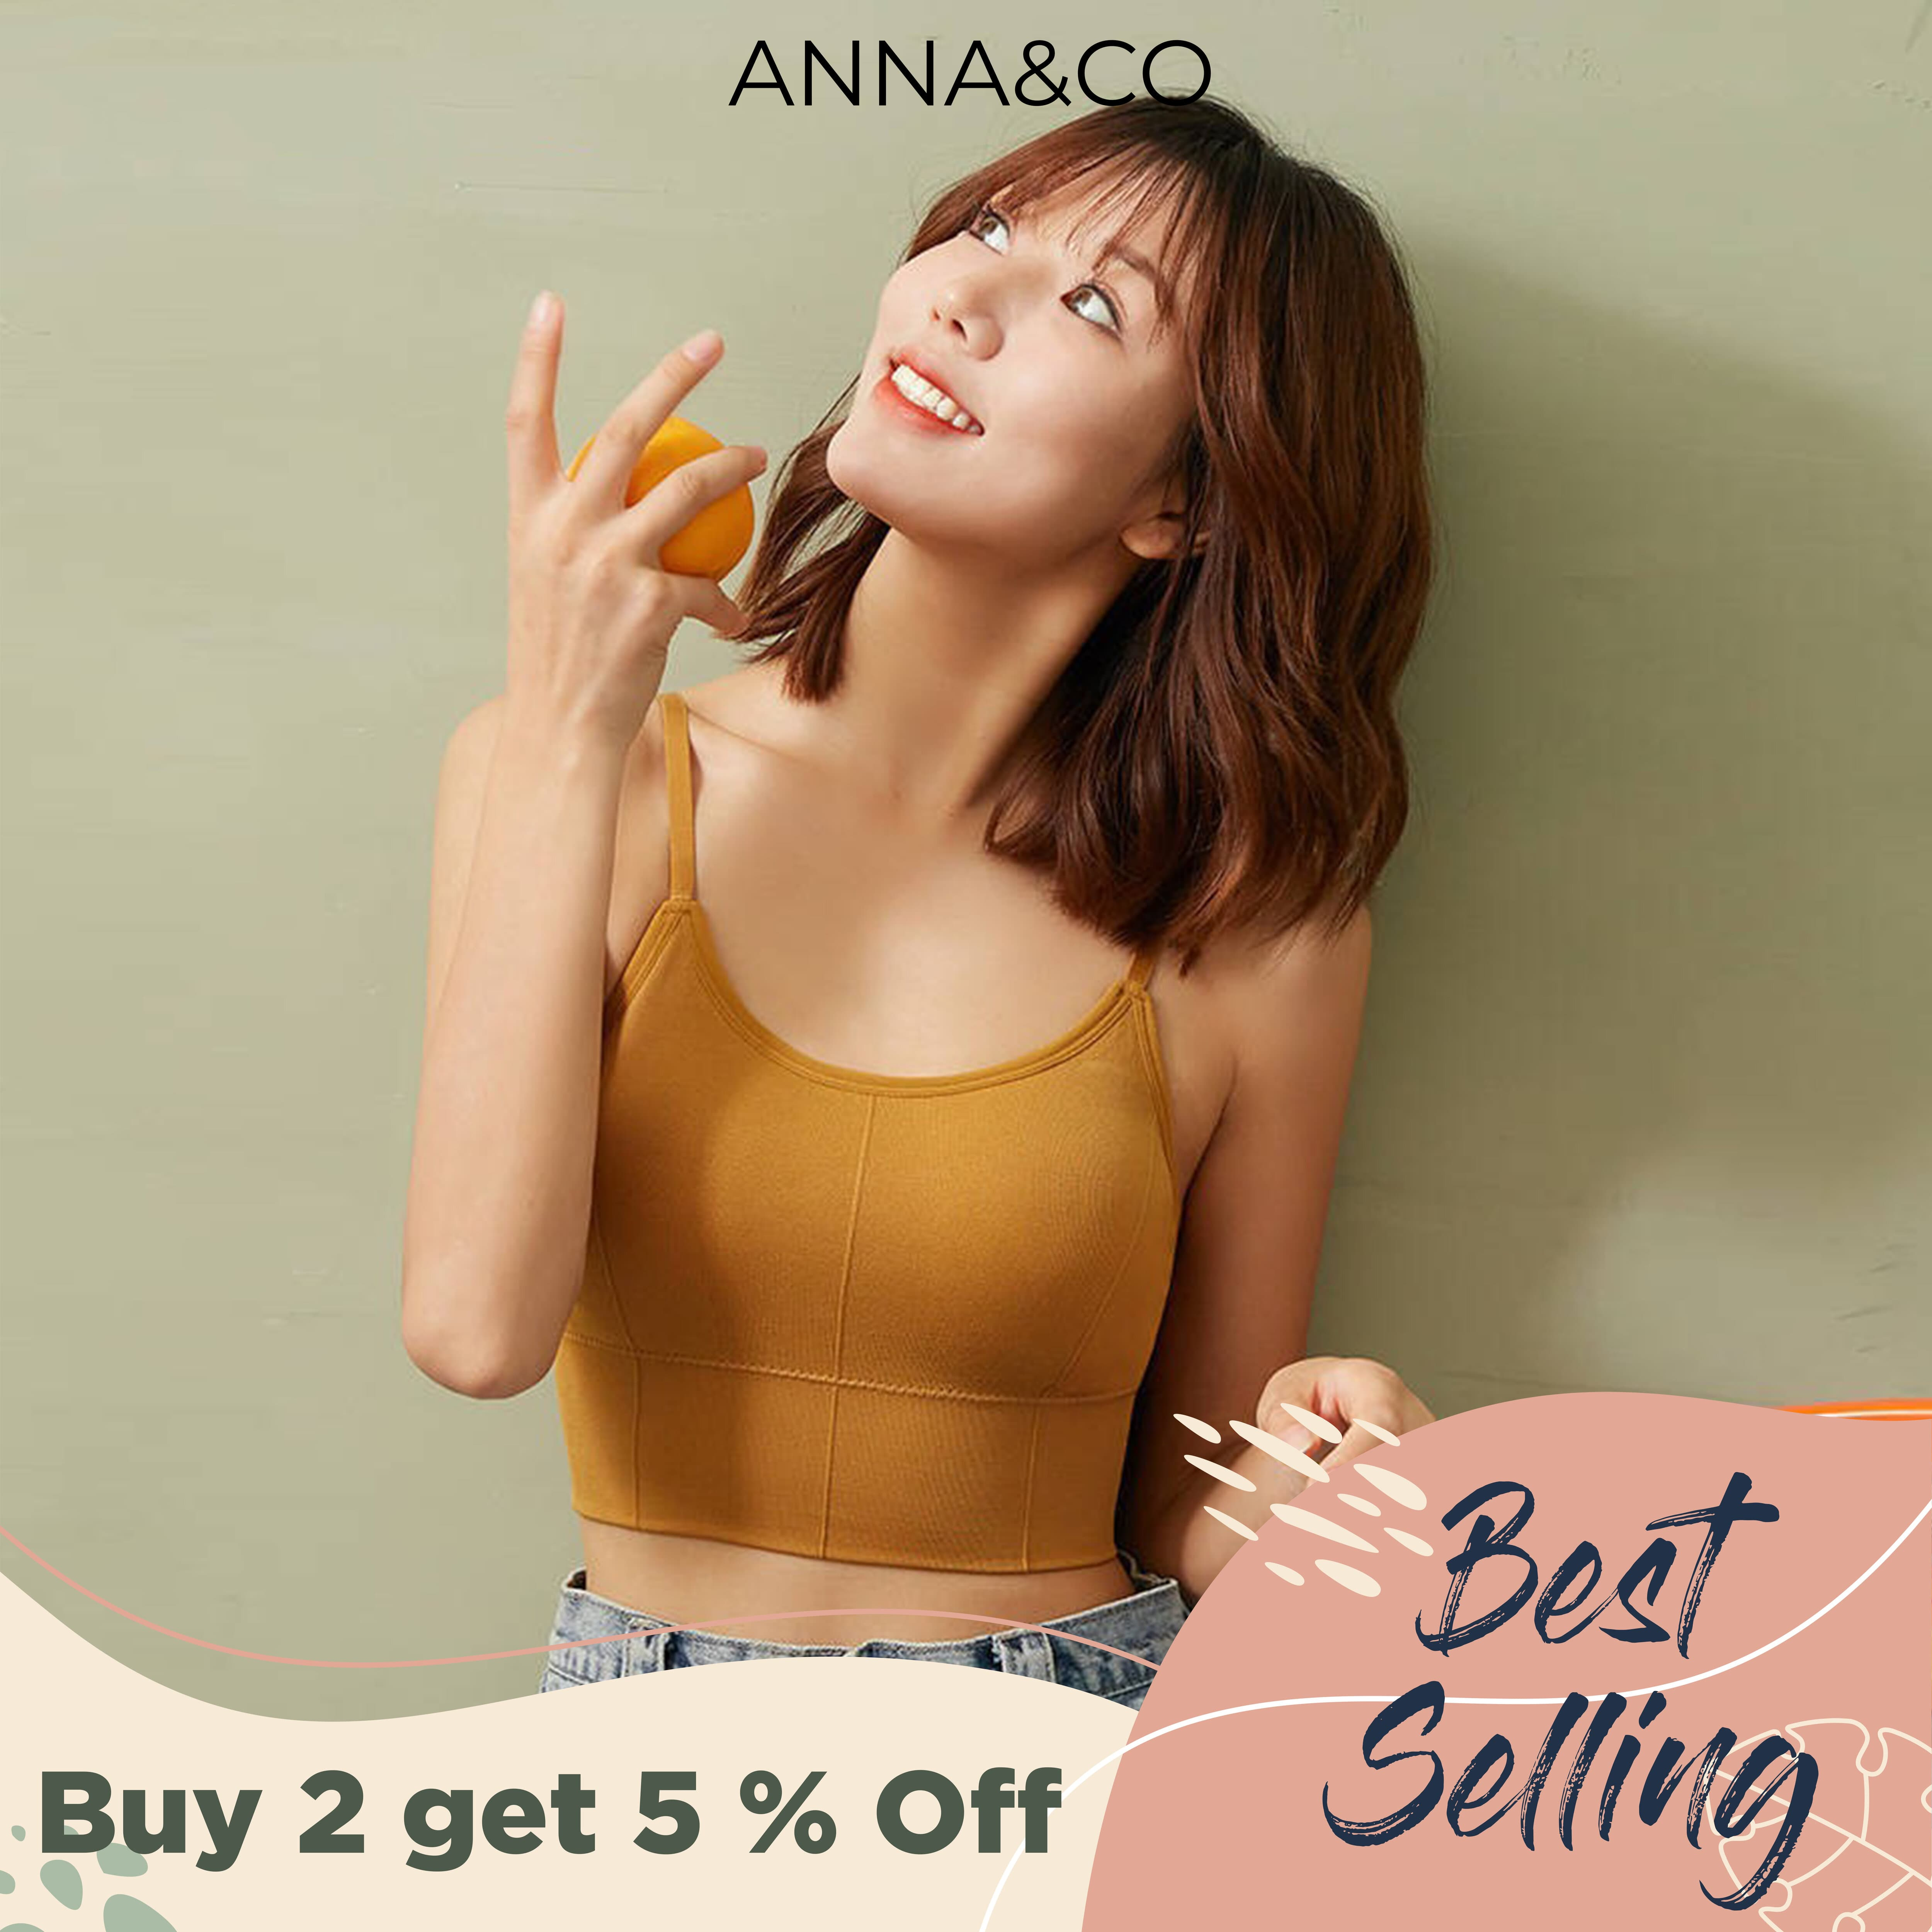 AnnaCo Juliet Women Bras Fine Luxury Premium lingerie Stretchable Japan Korean Style Wireless Seamless 3D Push Up Breathable Singlet type Bra with Removable Pads Stretchable Sexy Thin Strip Bra Full Cup One Size Easy Wearing ONE SIZE 646